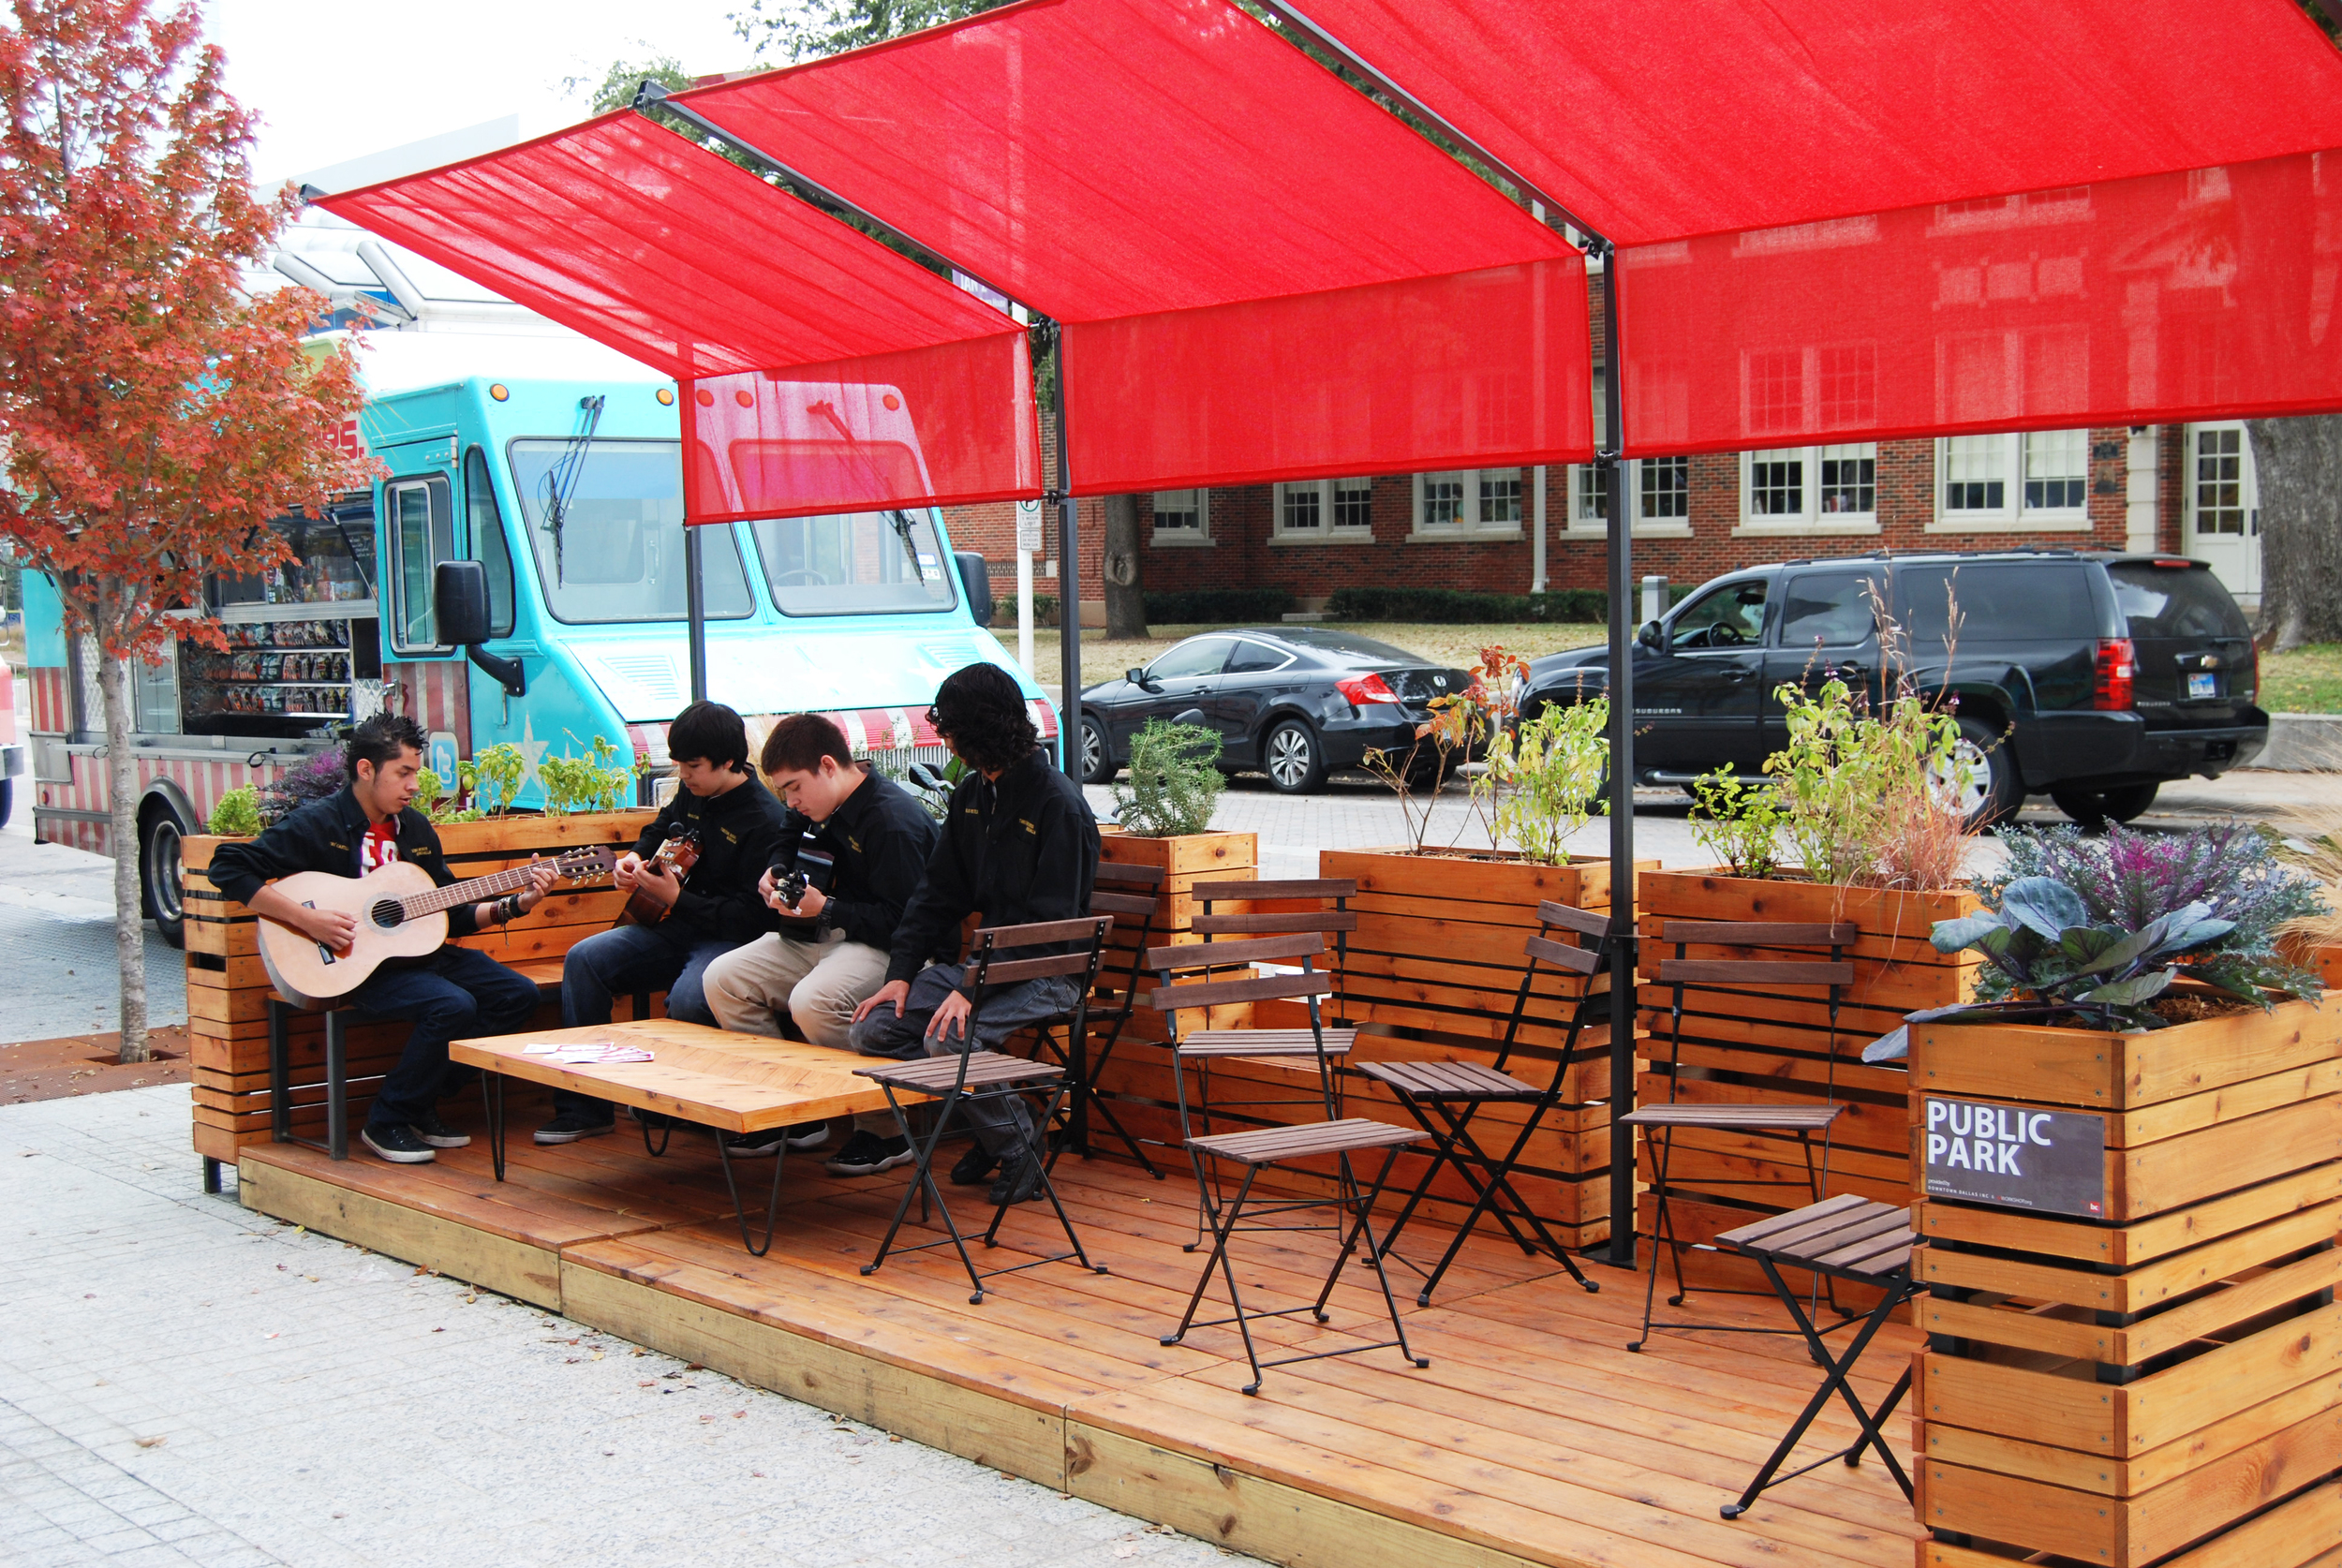 The La Rondalla student guitar group enliven the parklet